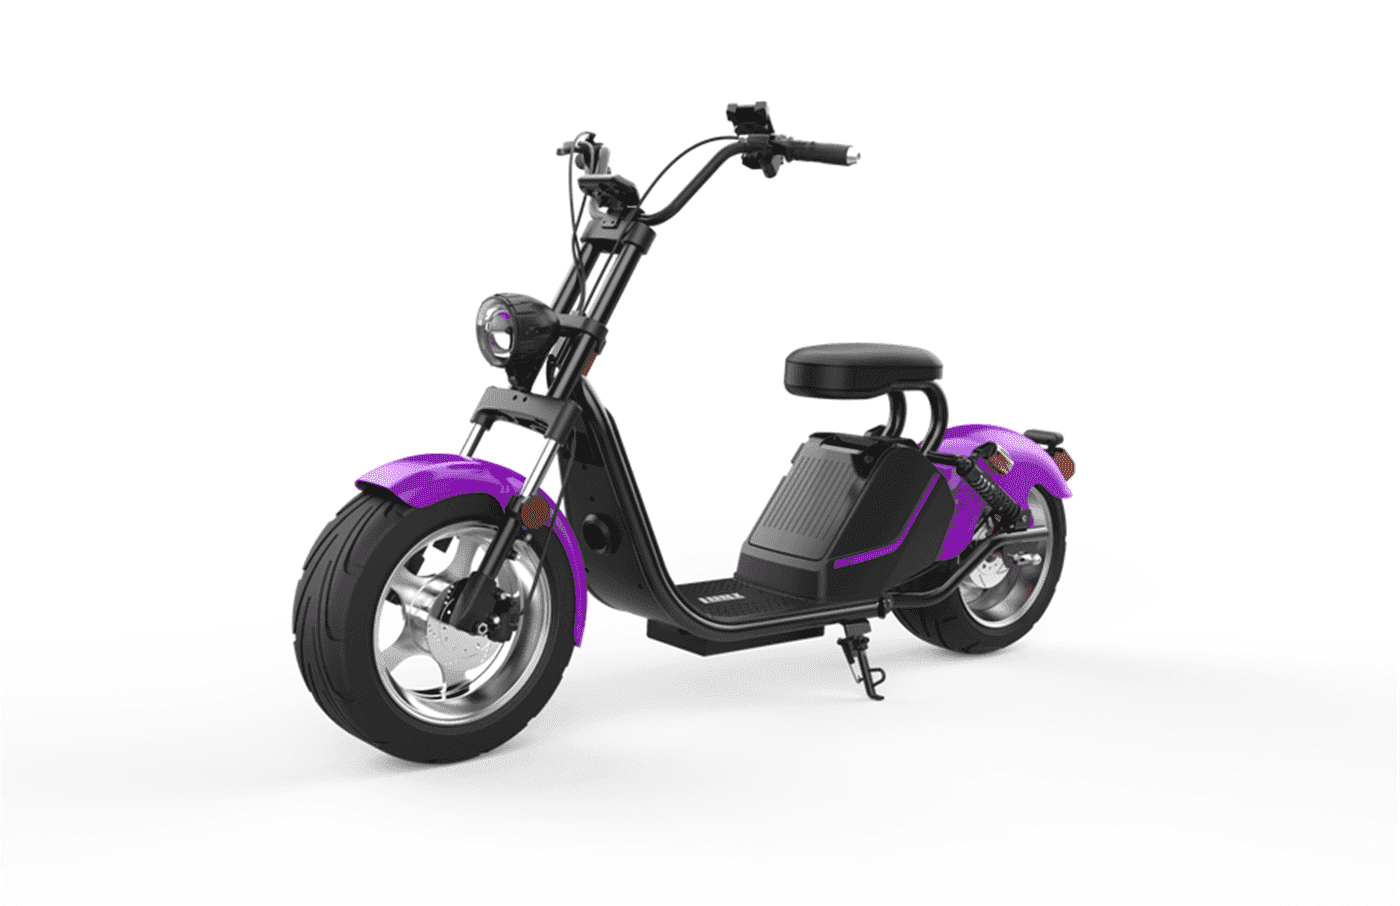 Caigiees Citycoco Harley big wheel electric scooter with EEC approved from Rooder factory supplier exhibition March Expo alibaba Super September Purchasing (6)